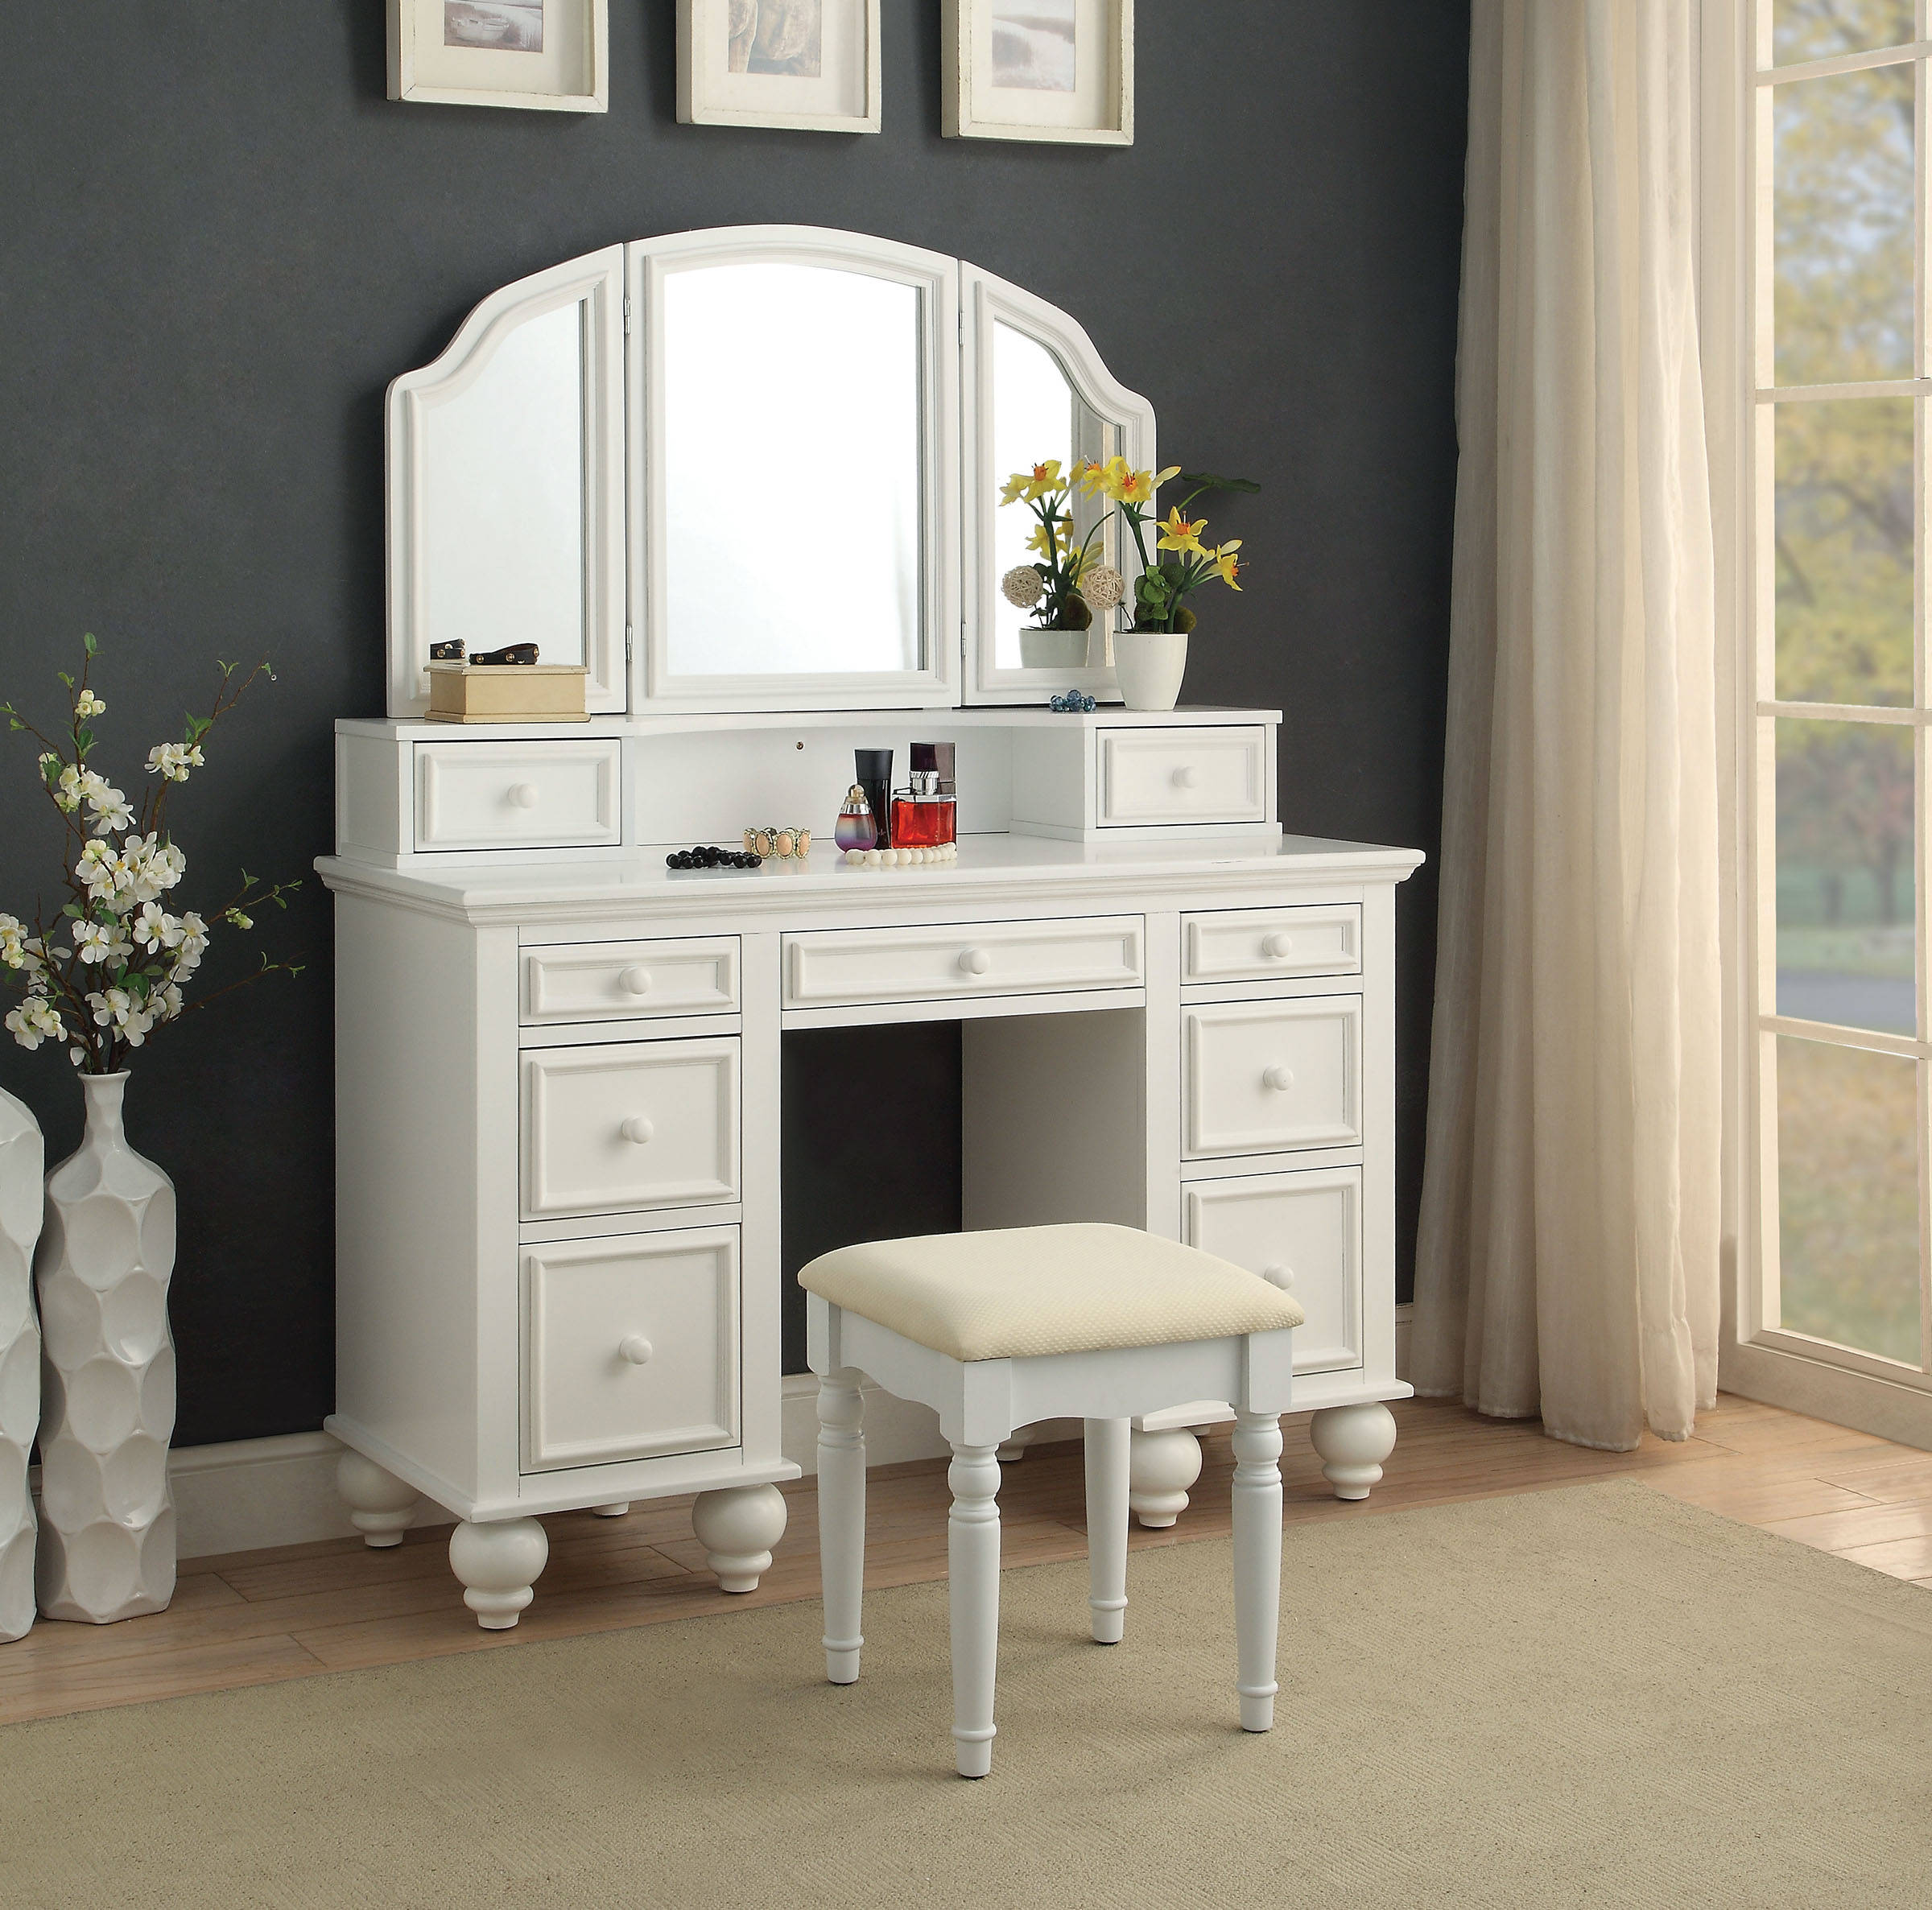 Furniture Of America Athy White Vanity With Stool The